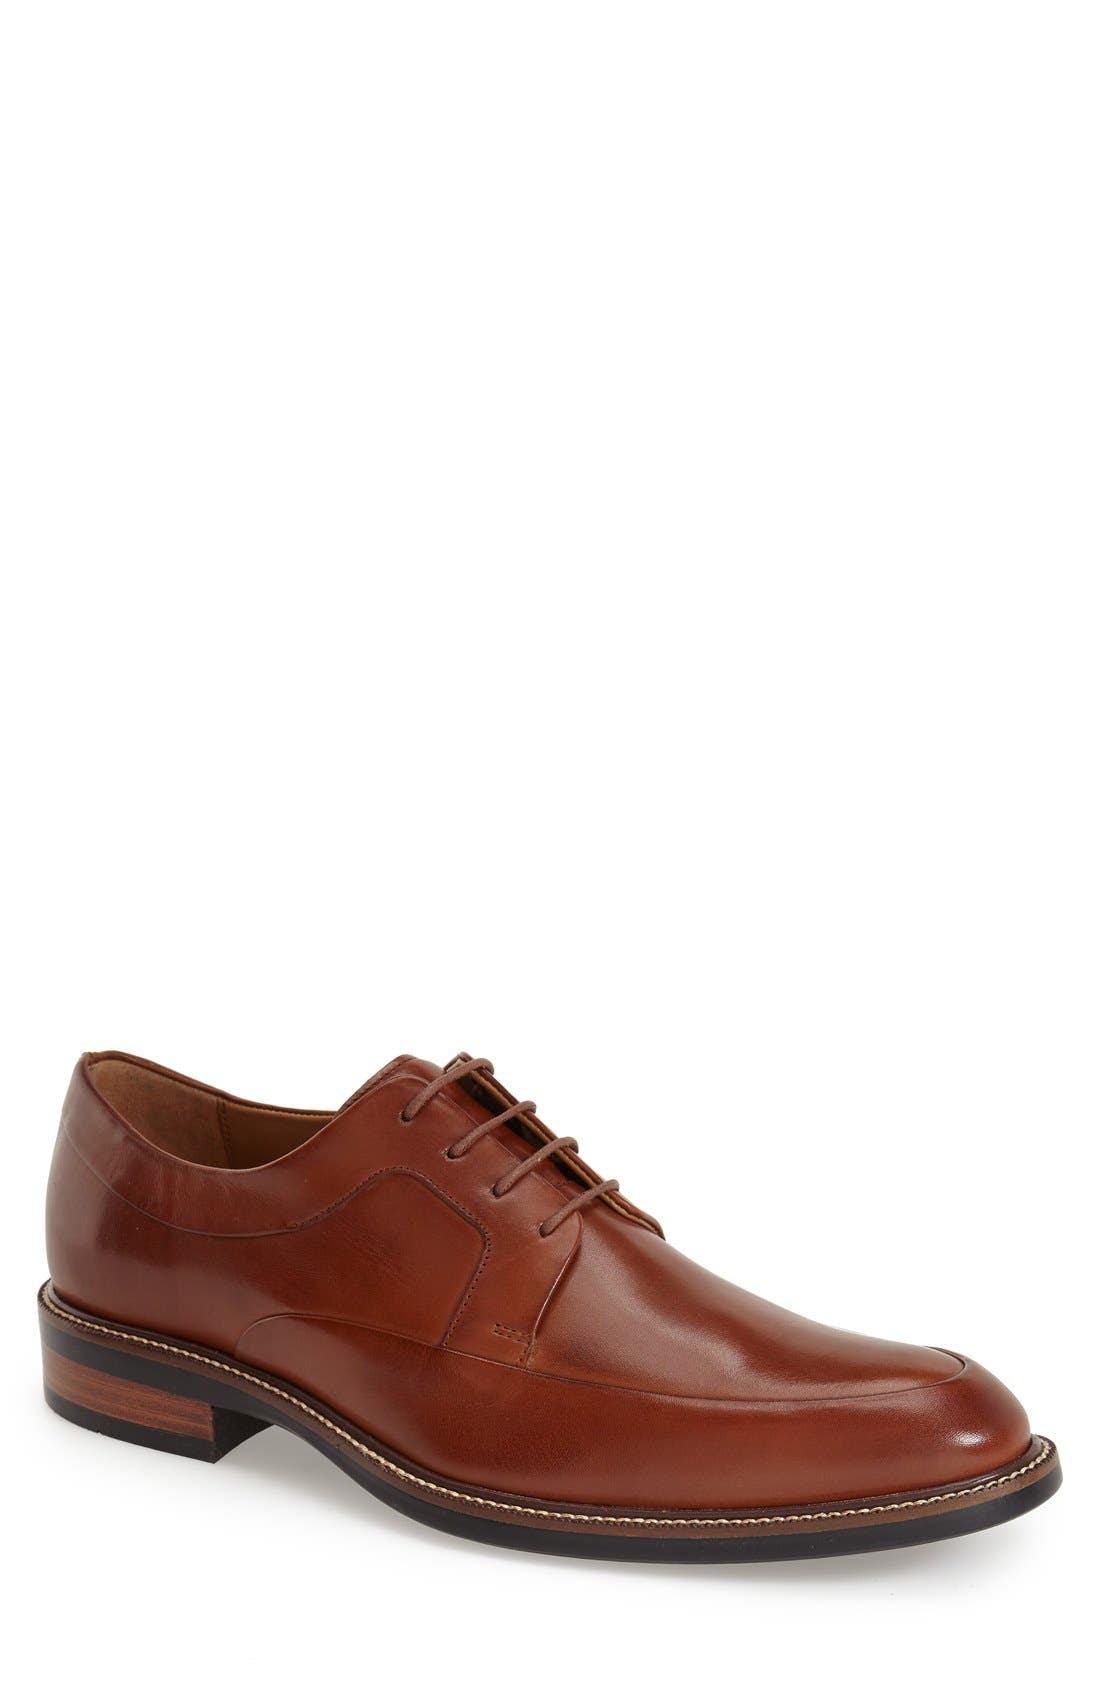 COLE HAAN 'Warren' Apron Toe Derby